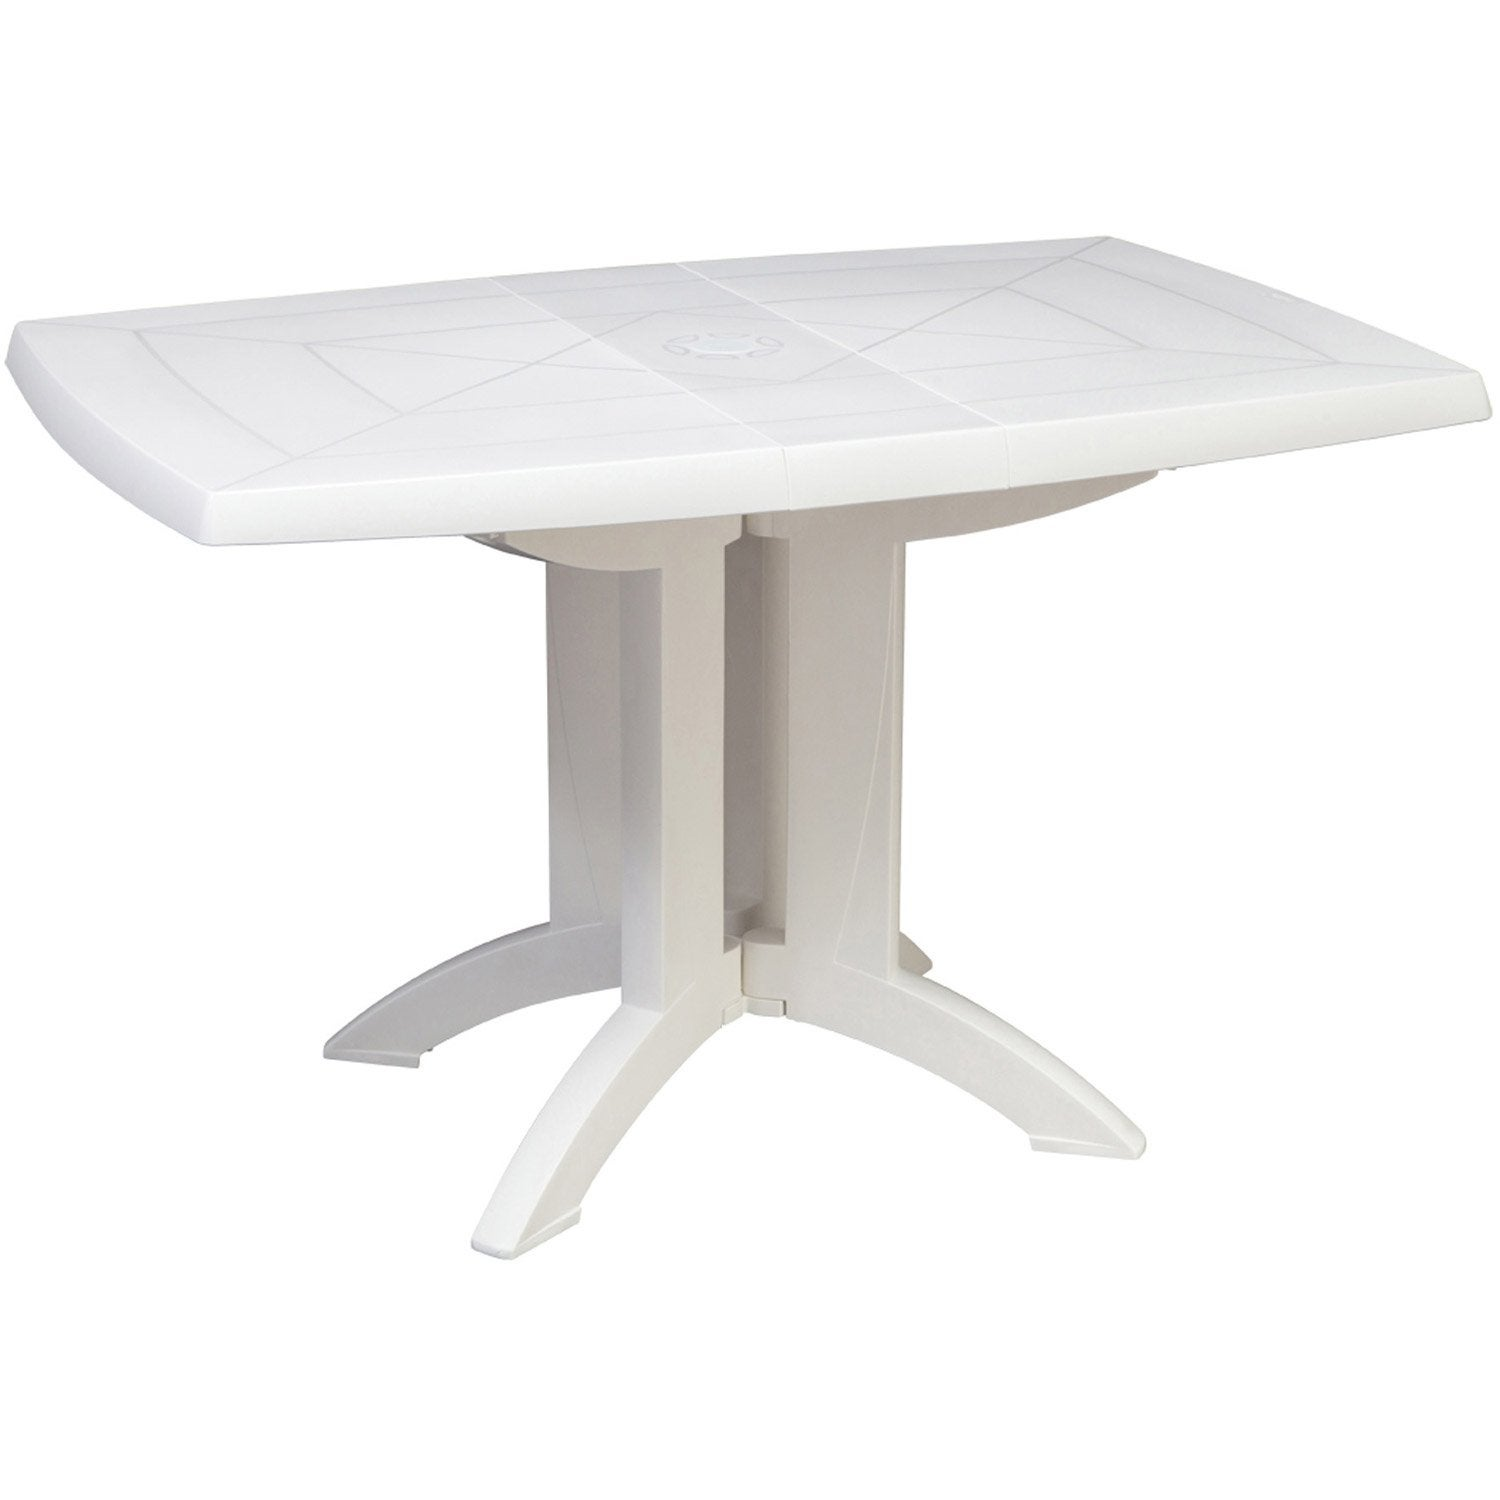 Table de jardin grosfillex v ga rectangulaire blanc 4 for Table de jardin pliante plastique